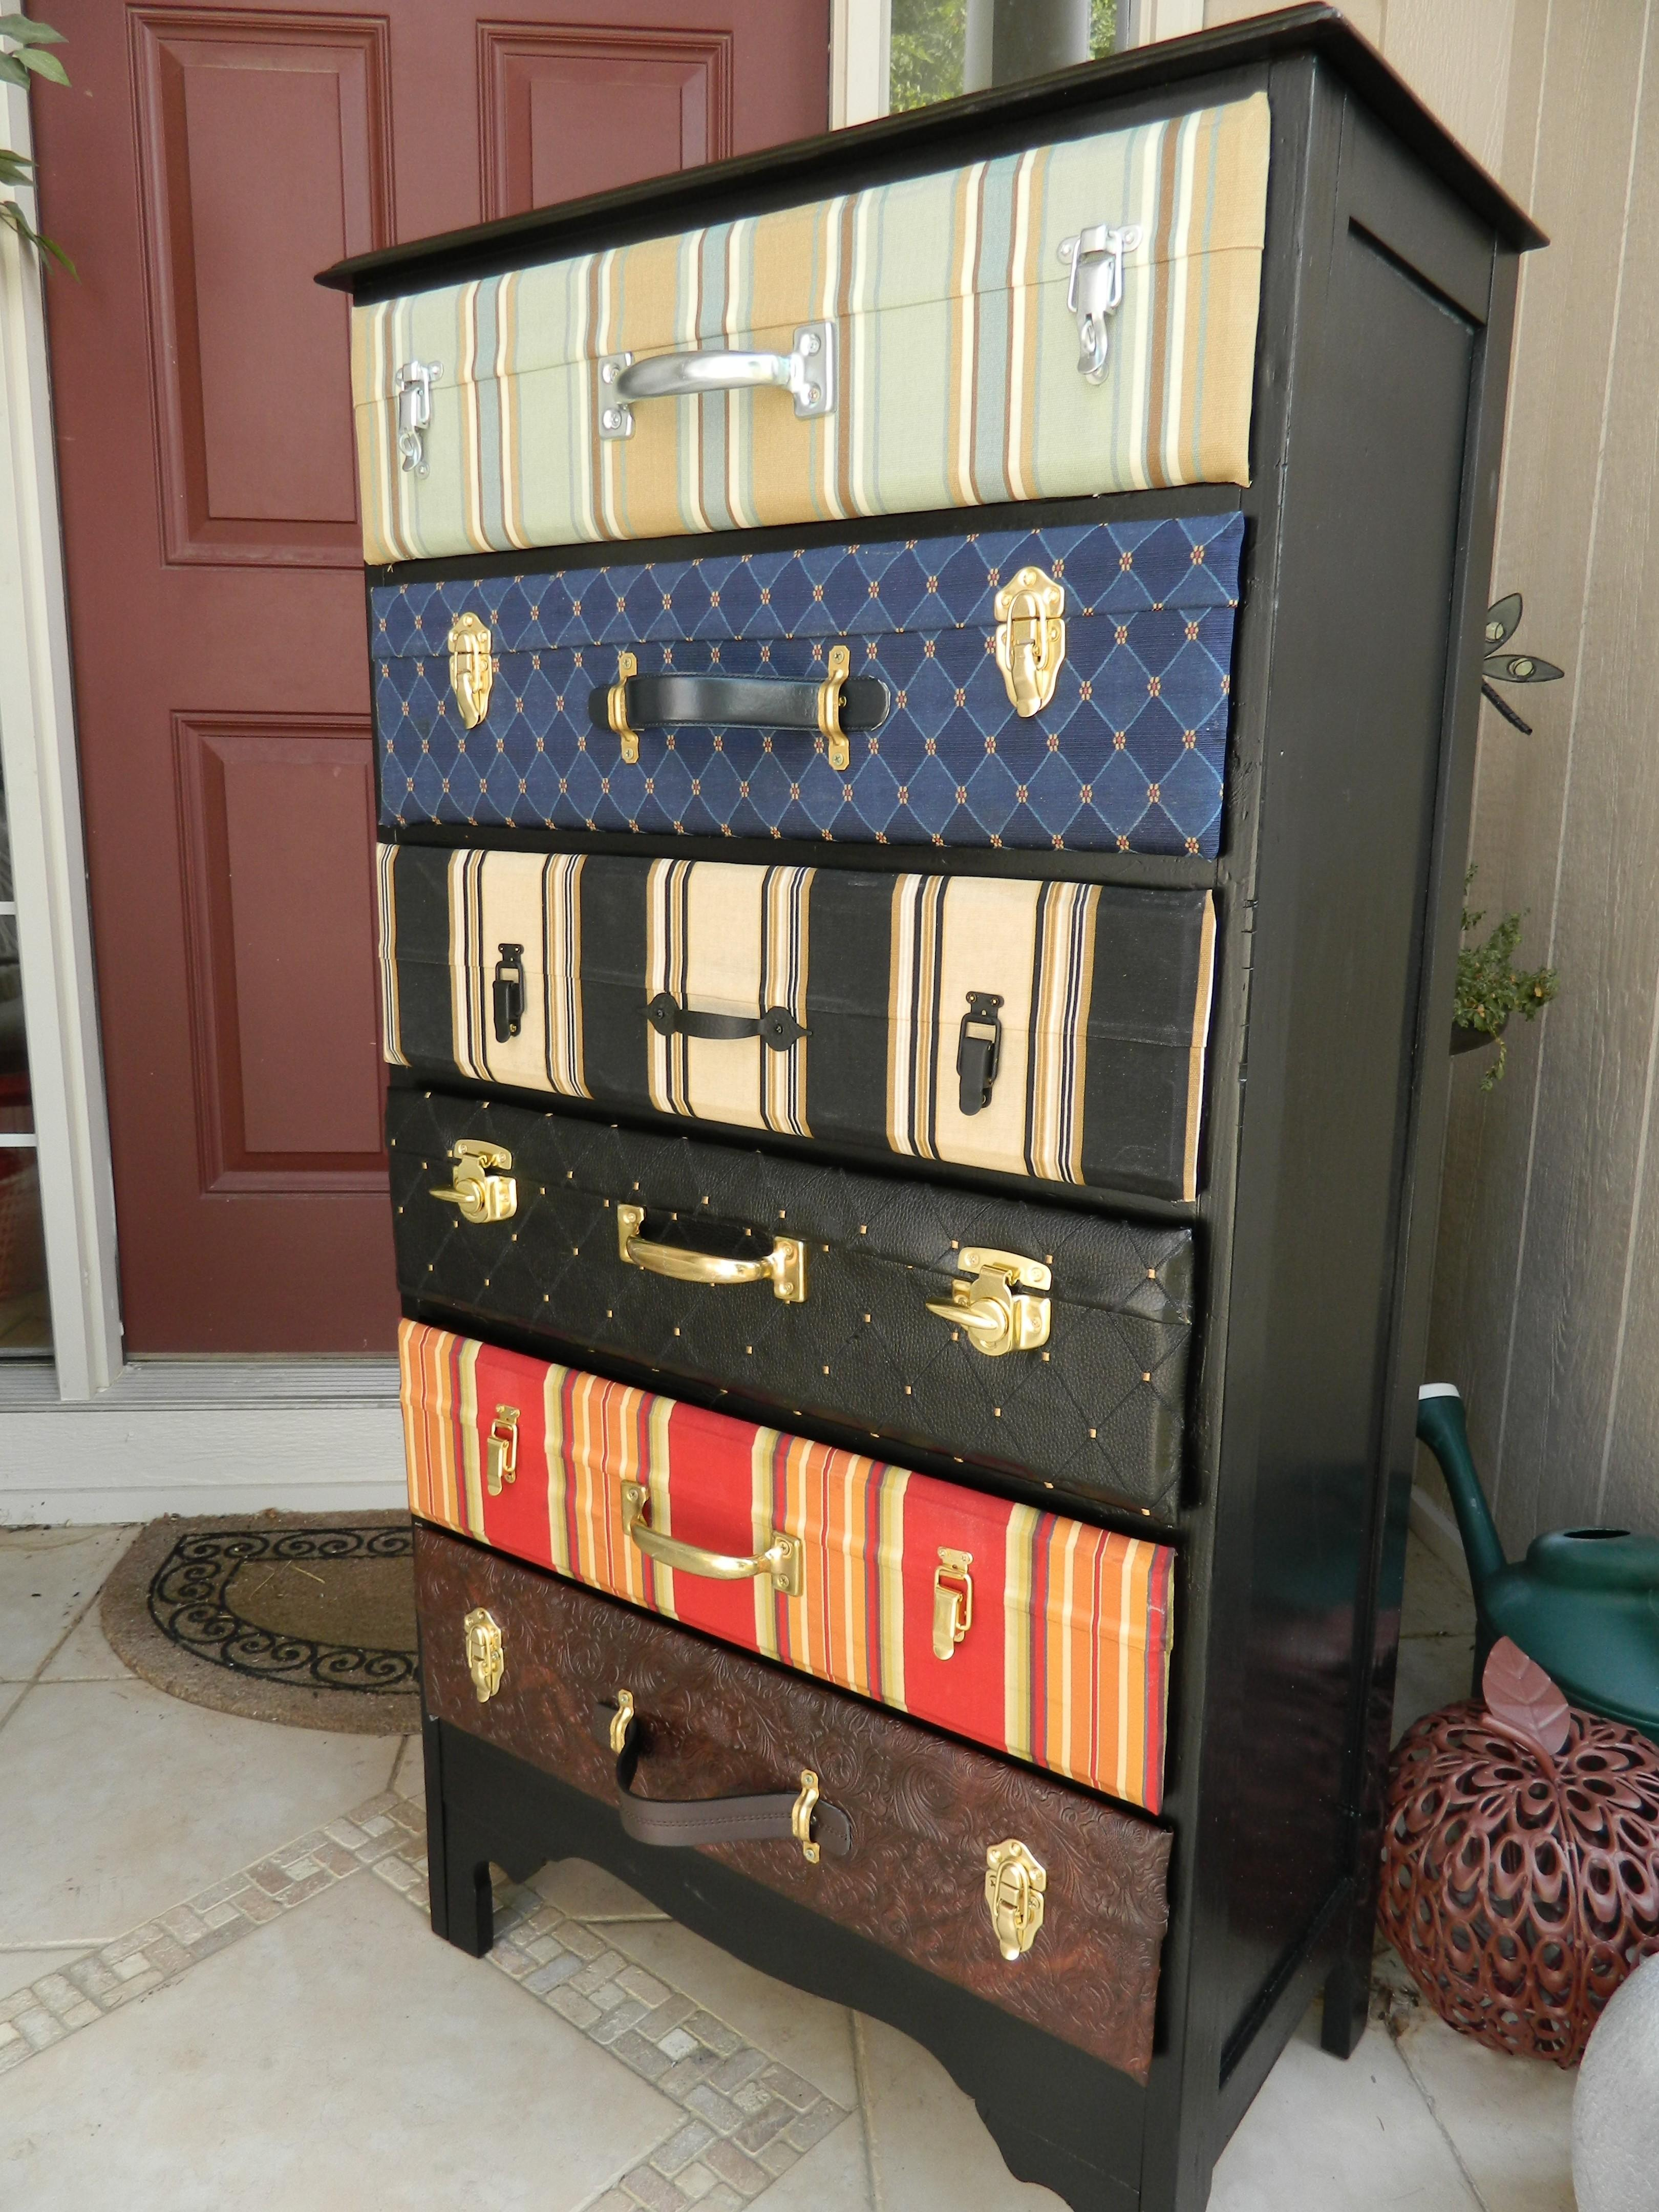 Third Installment Dresser Upcycle Project